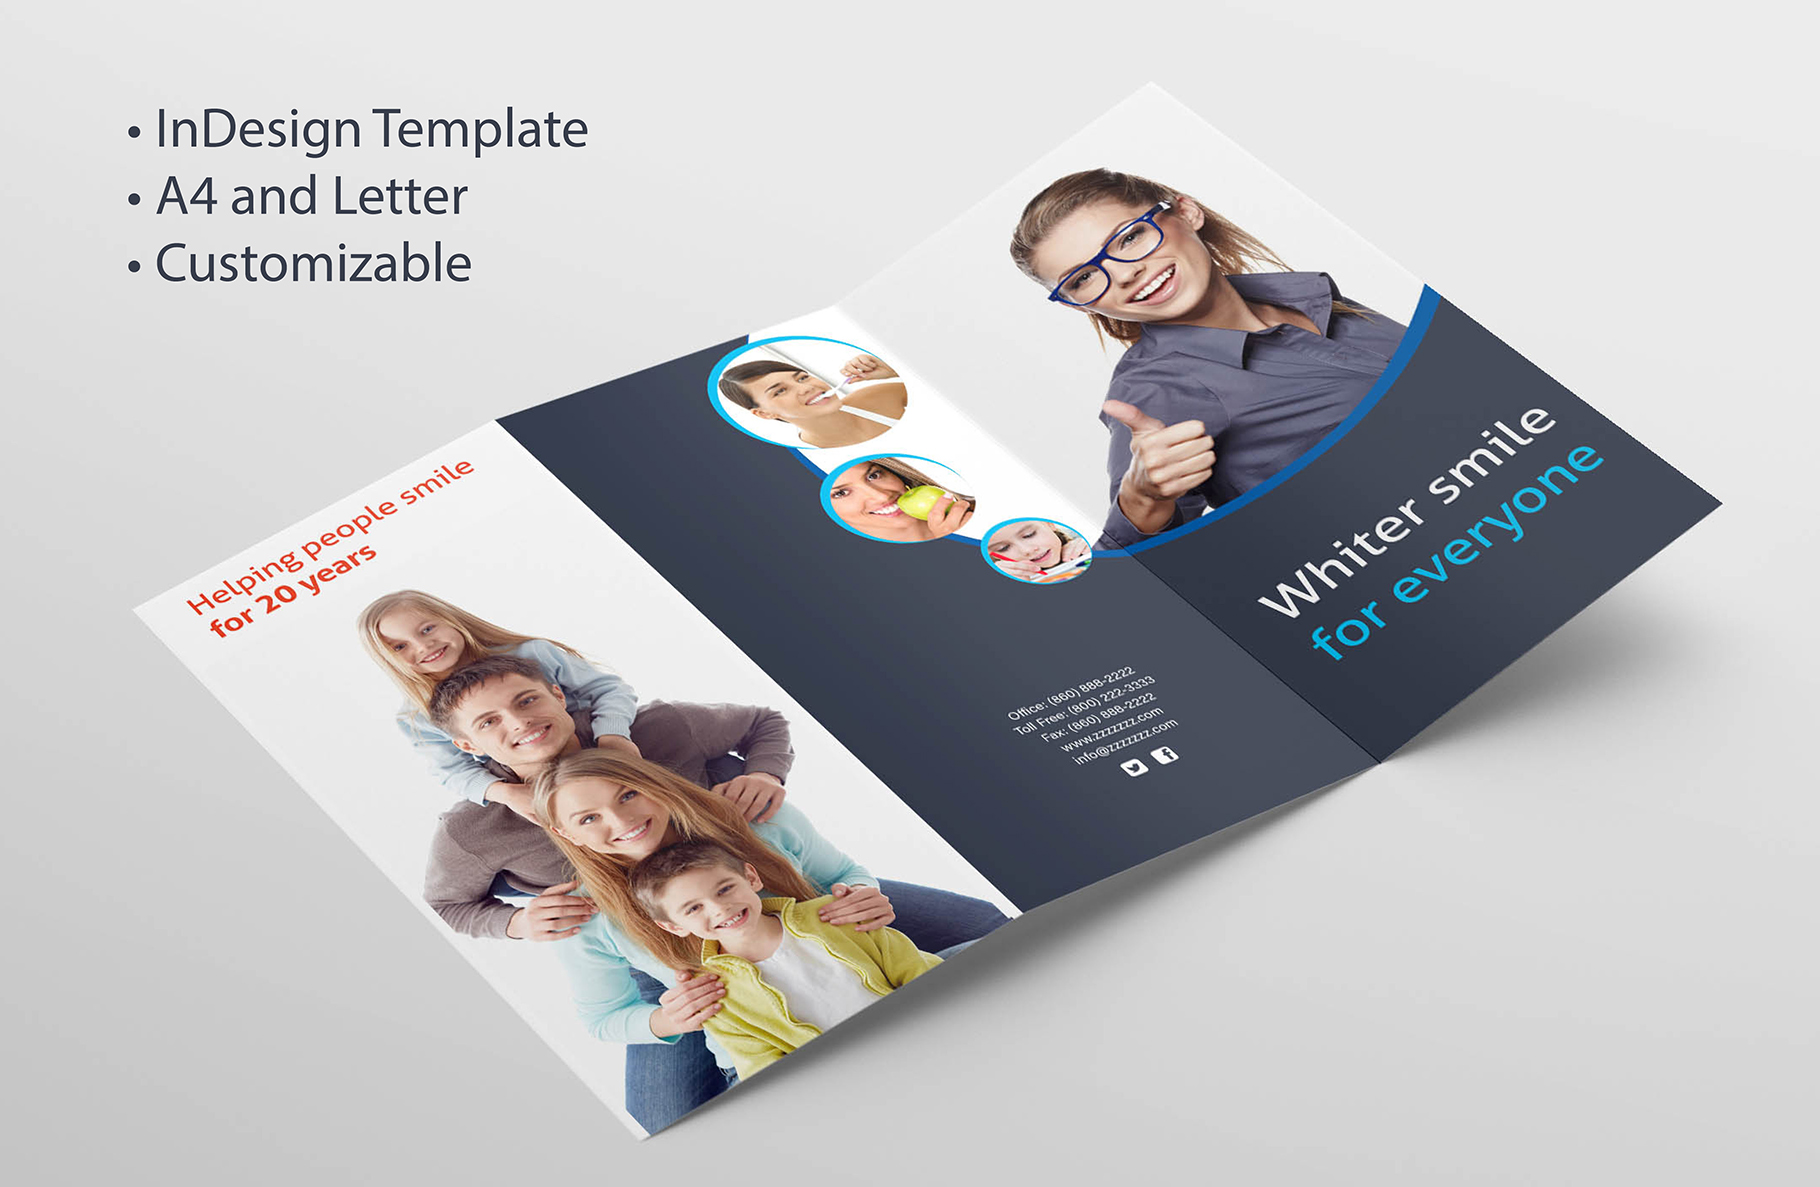 tri fold brochure template pages - adobe indesign tri fold brochure template graphic by